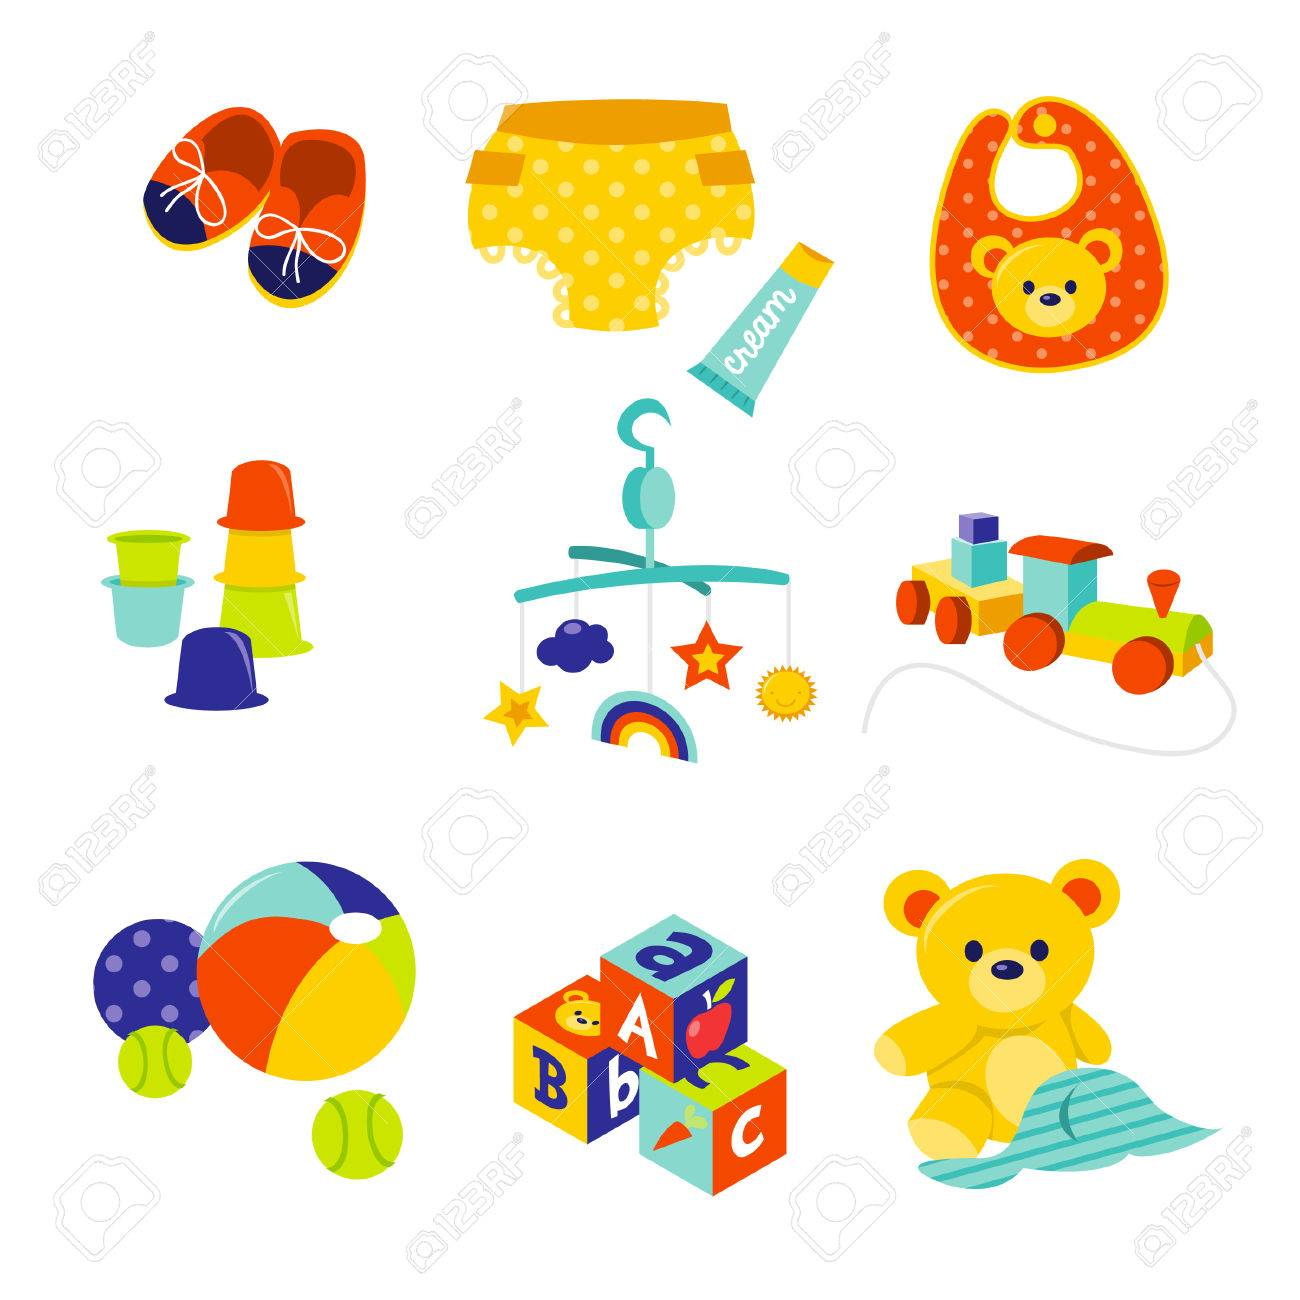 A Cartoon Illustration Of Cute Baby Gears And Toys. Royalty Free ...